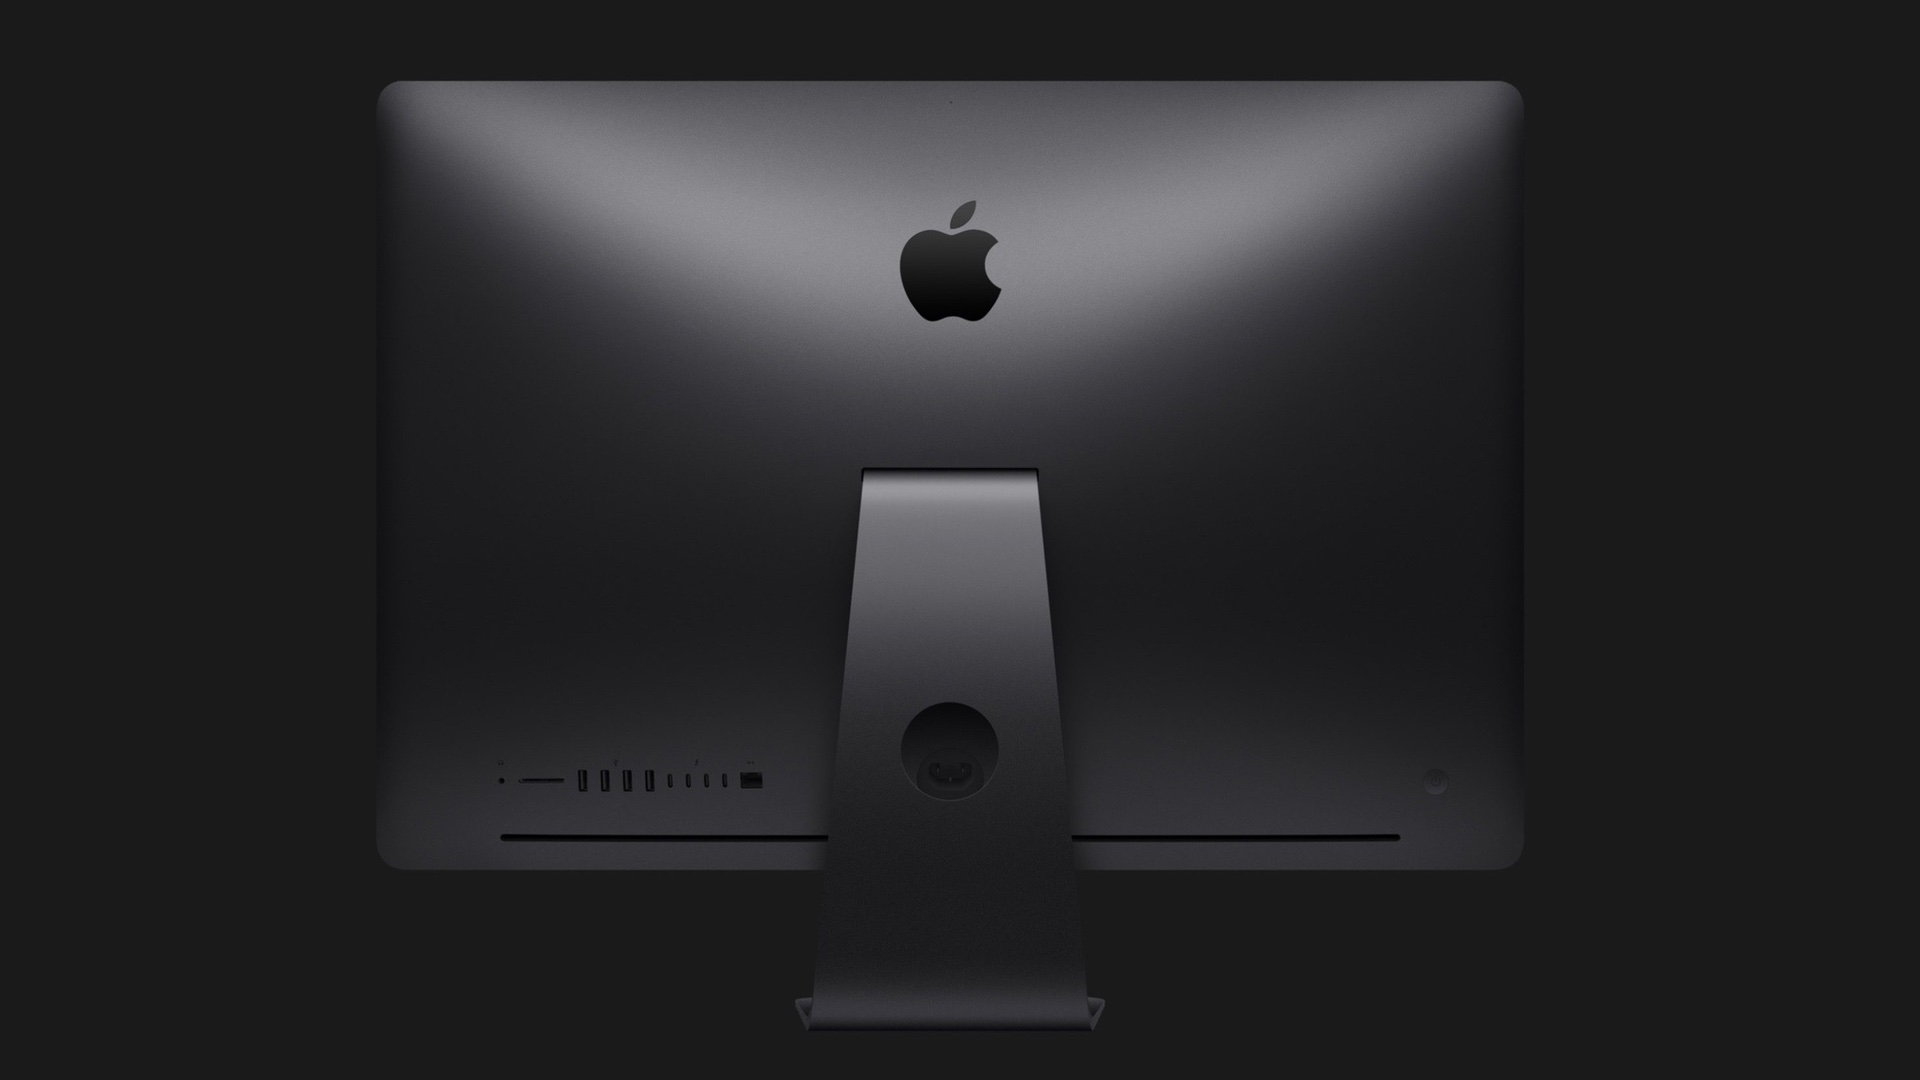 Opinion: The 10-Core iMac Pro sans additional upgrades is